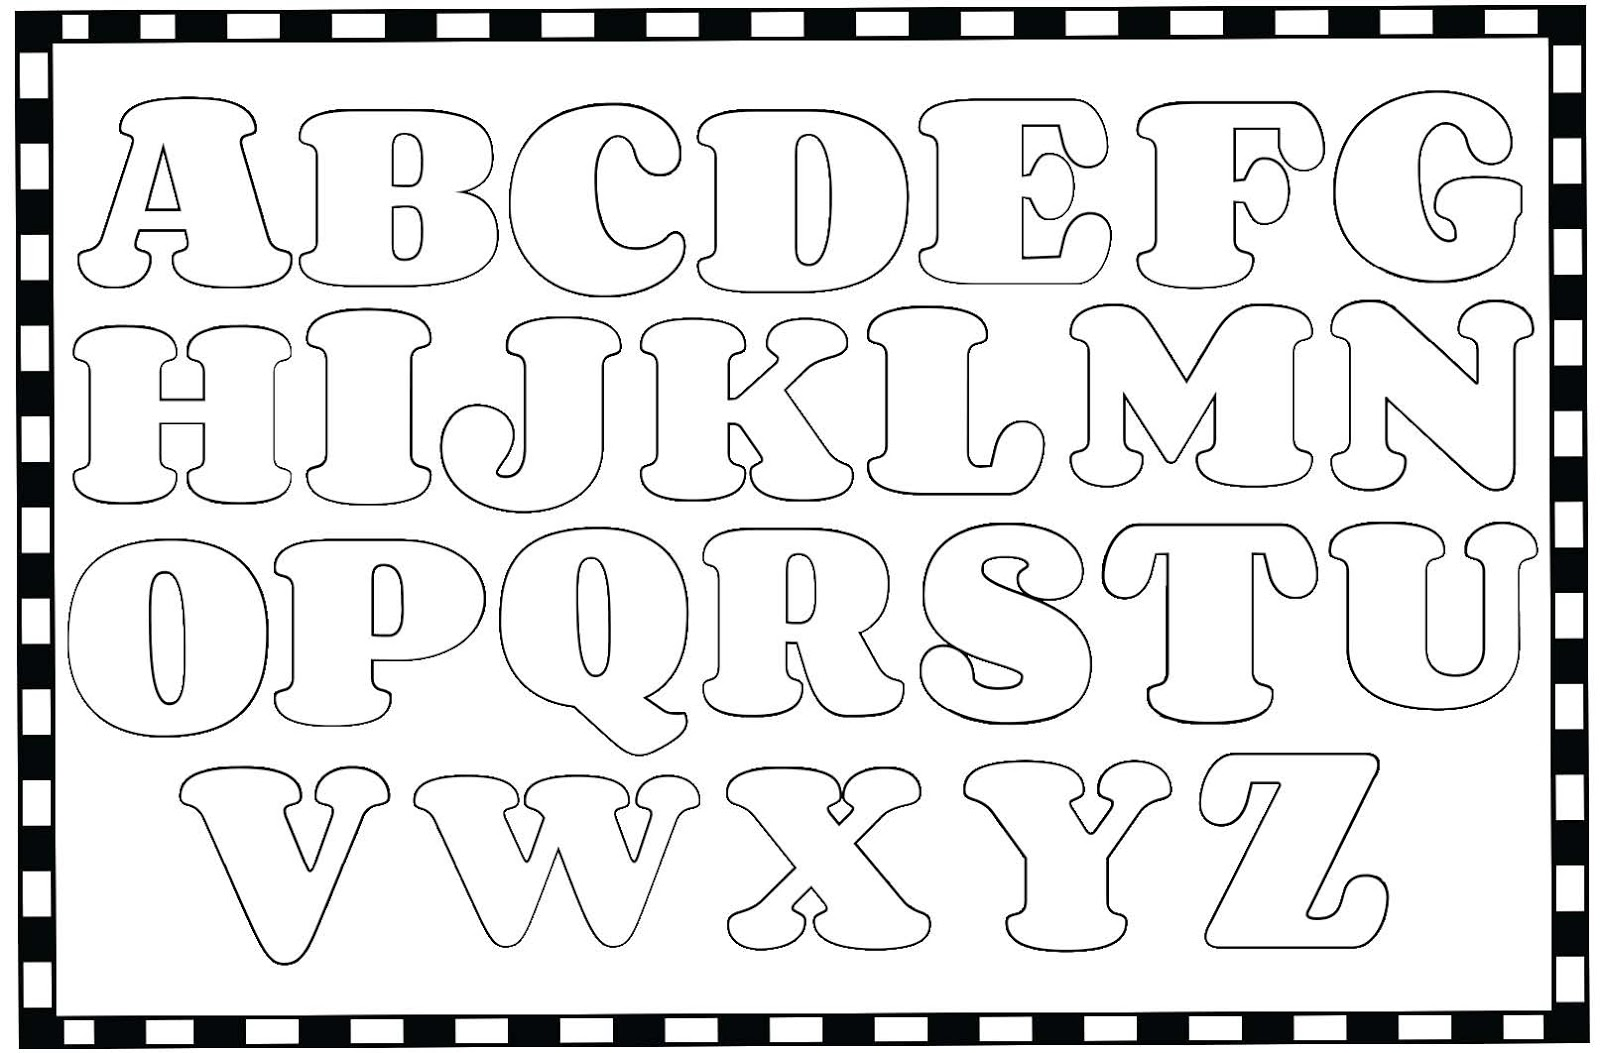 colour in letters of the alphabet alphabet coloring pages for kids to print color alphabet colour the in letters of